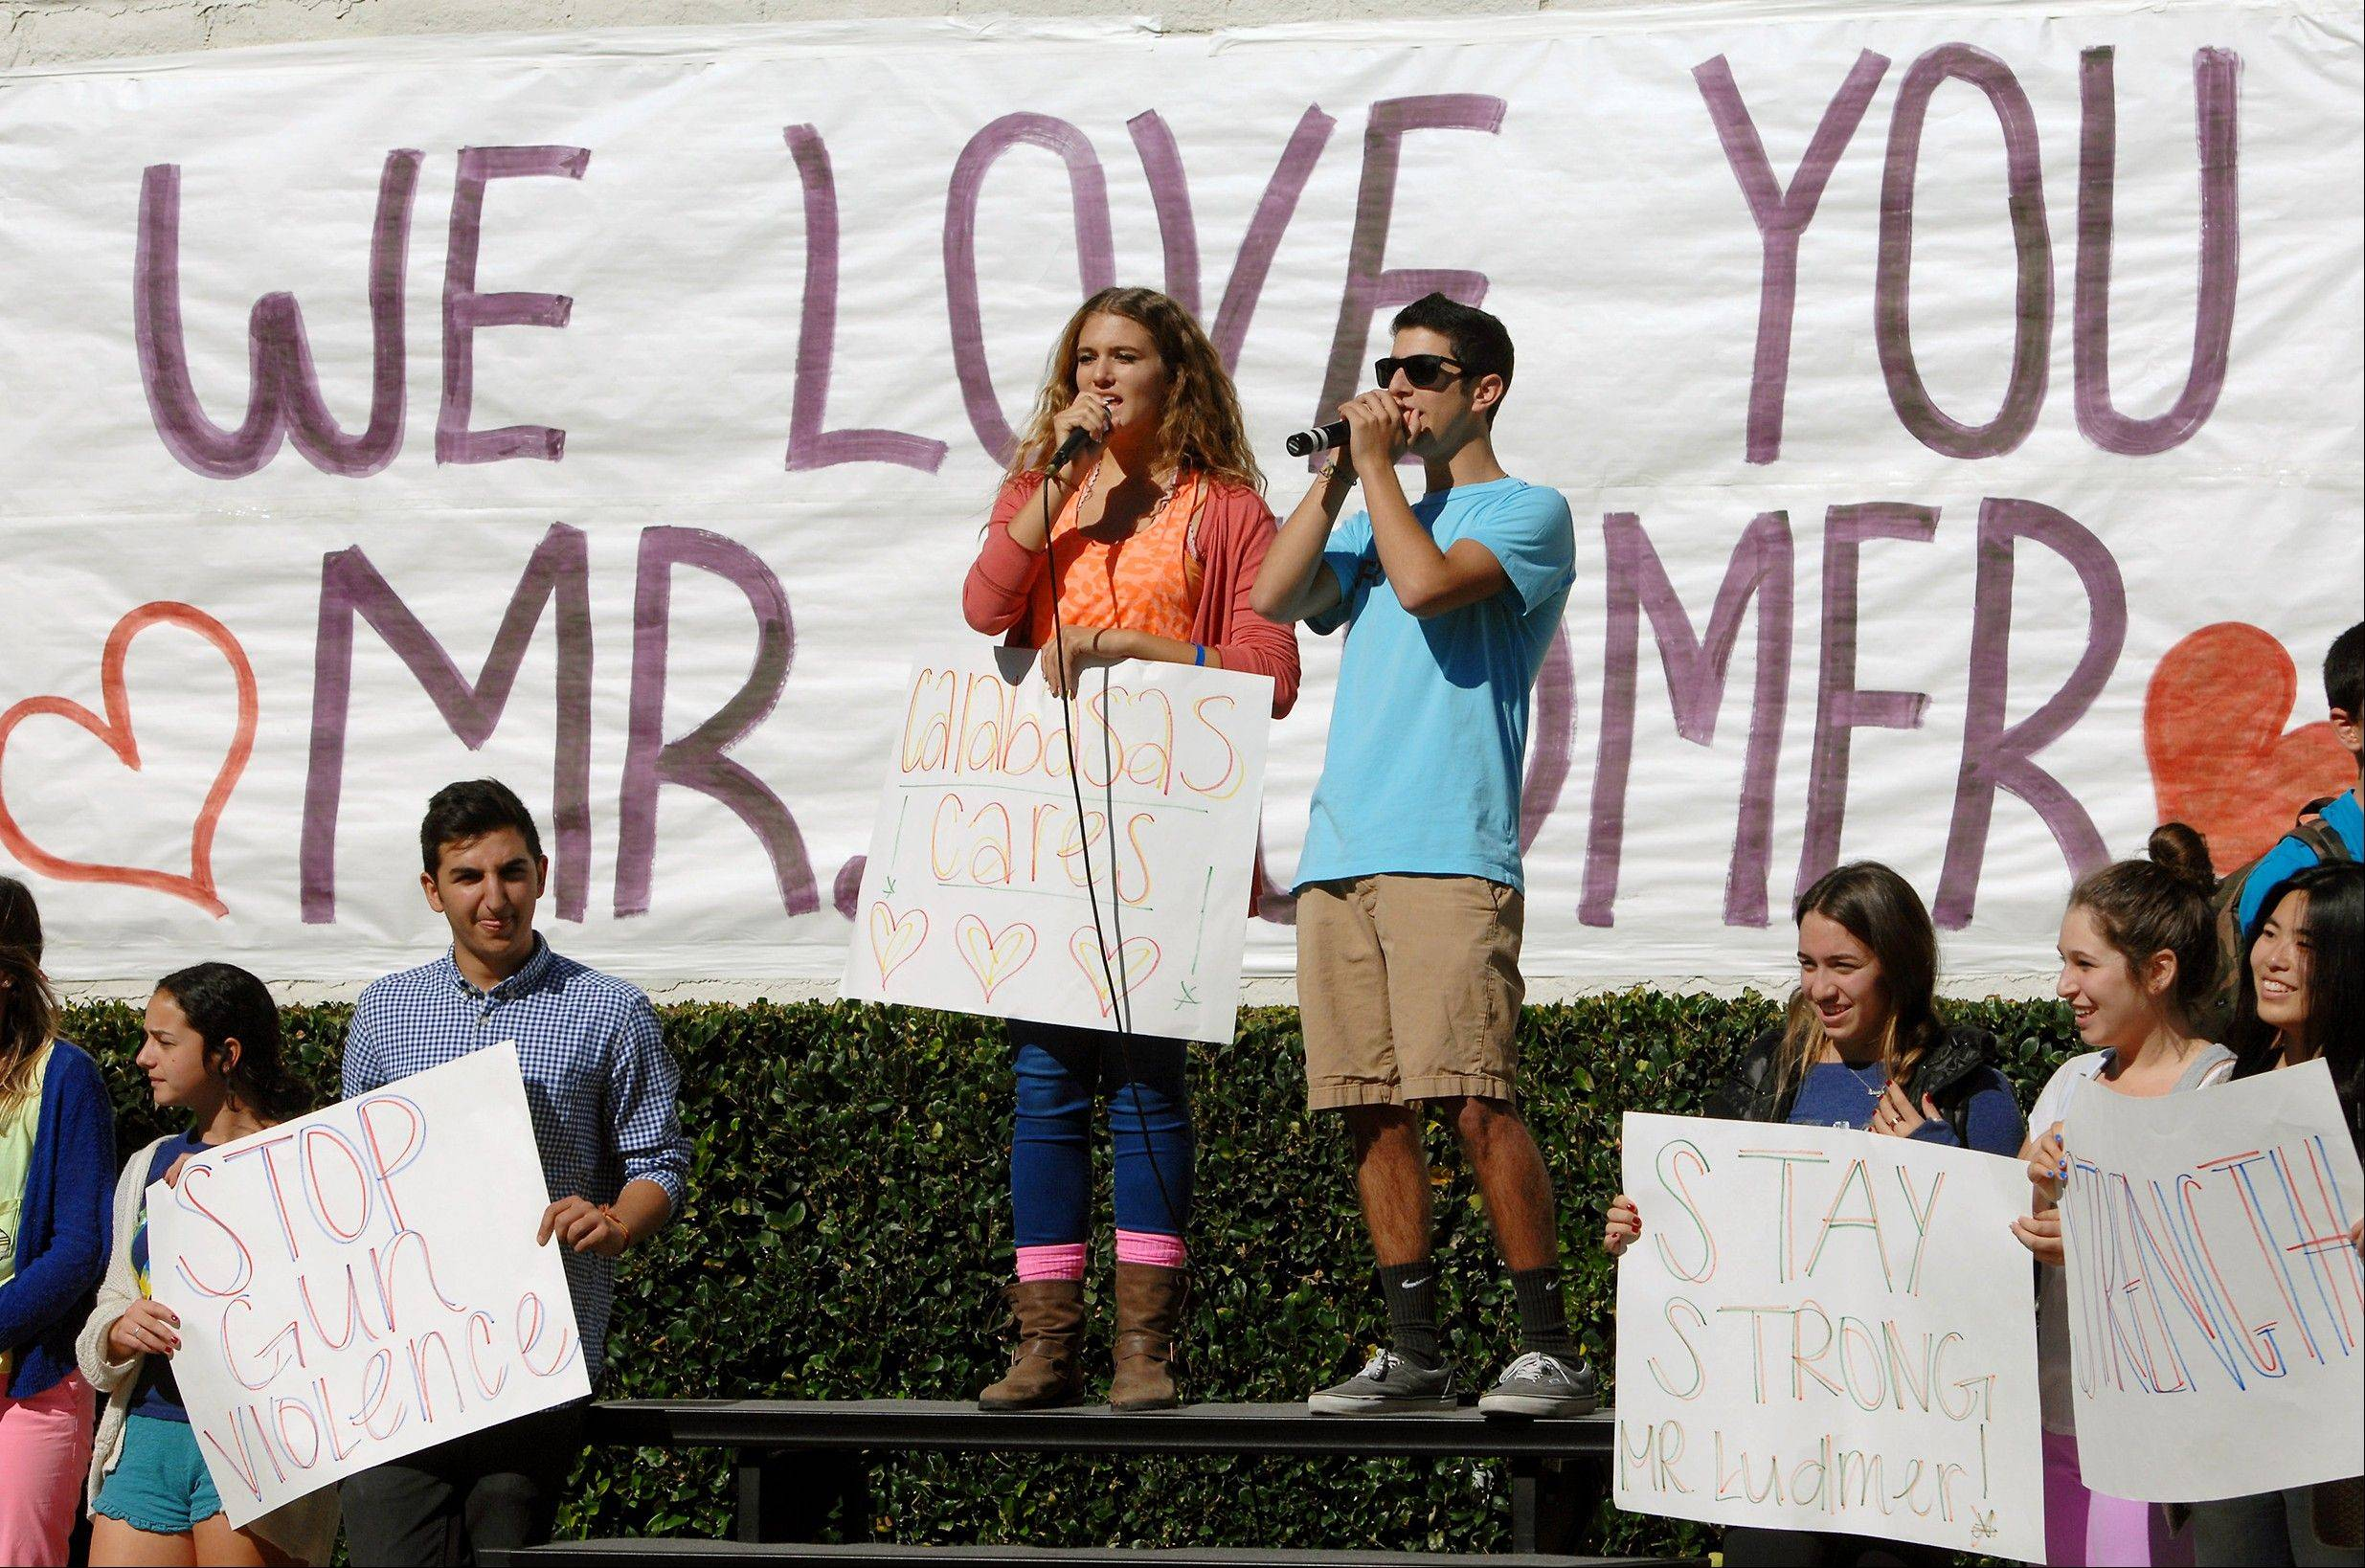 Students hold a rally to support teacher Brian Ludmer at Calabasas High School, Tuesday, Nov. 5, 2013. Ludmer was shot at Los Angeles International Airport, Nov. 1, and remains in the hospital after a bullet hit his calf and shattered a bone. Doctors say he'll recover.